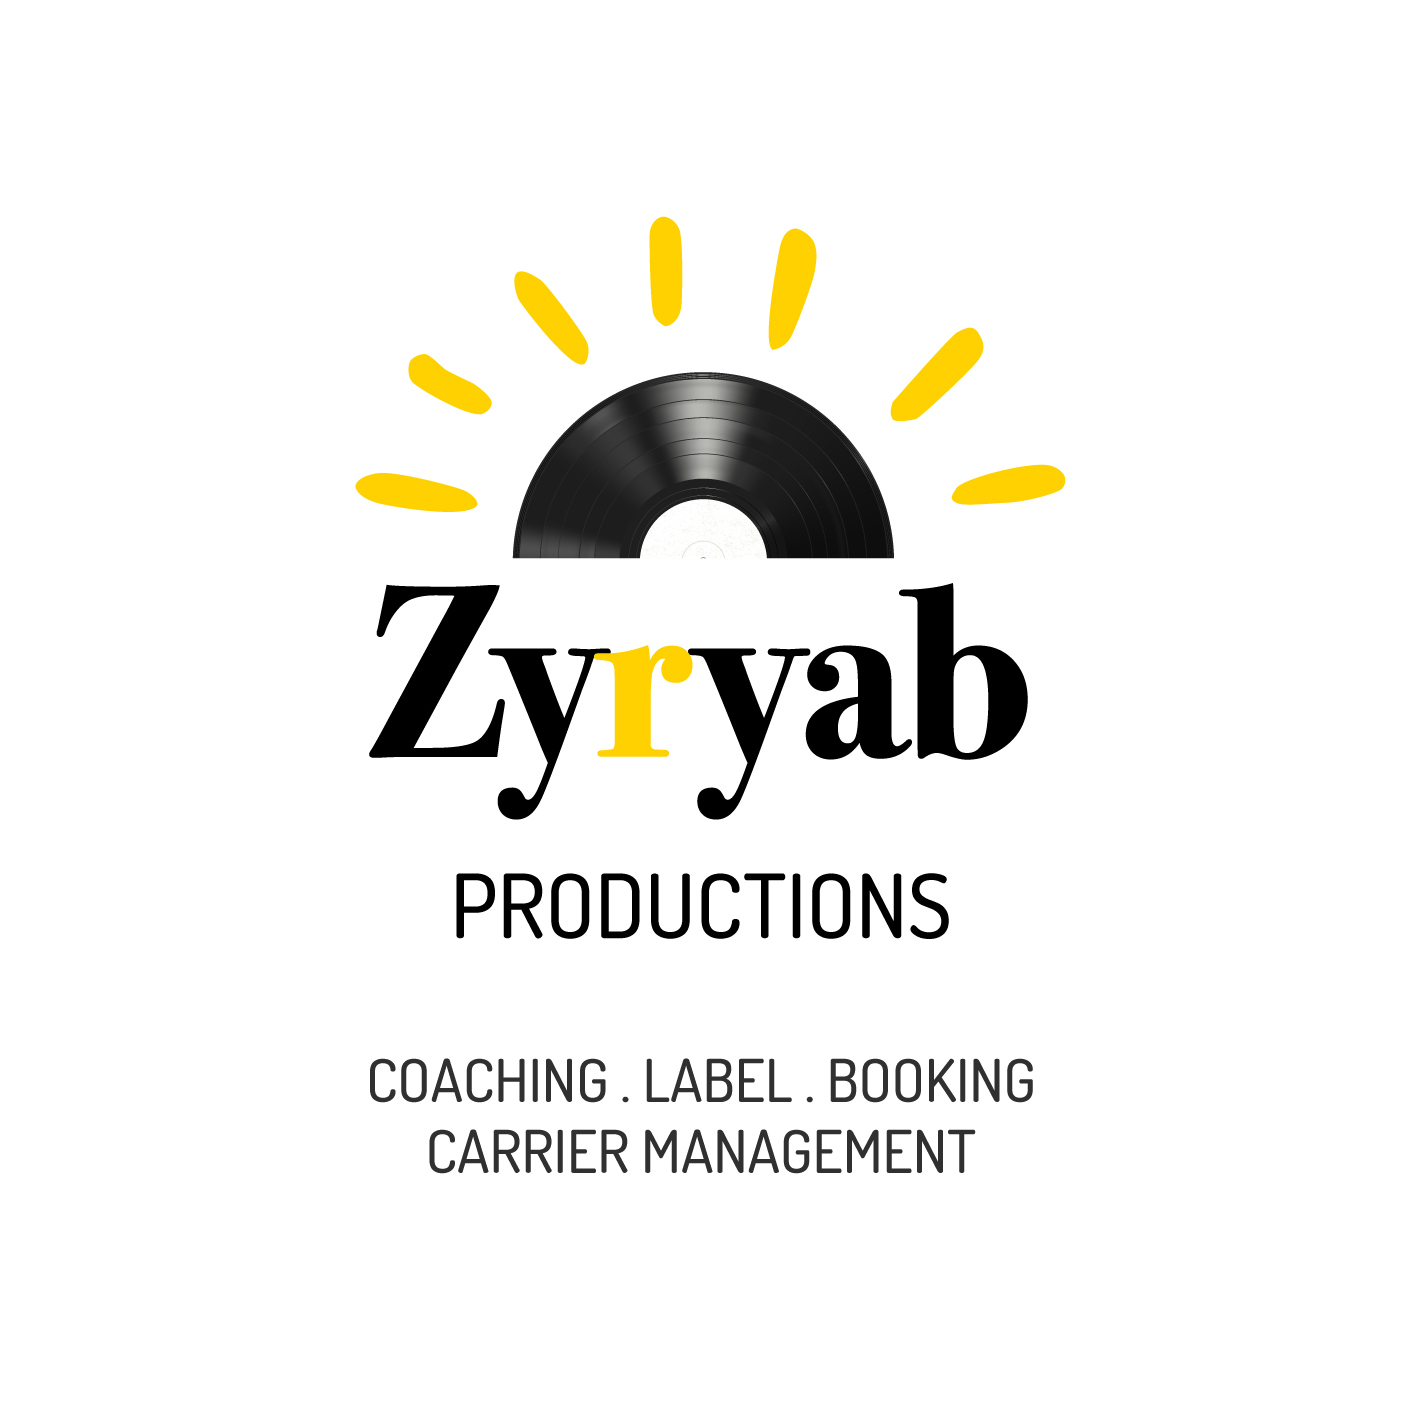 Logo de ZYRYAB Productions